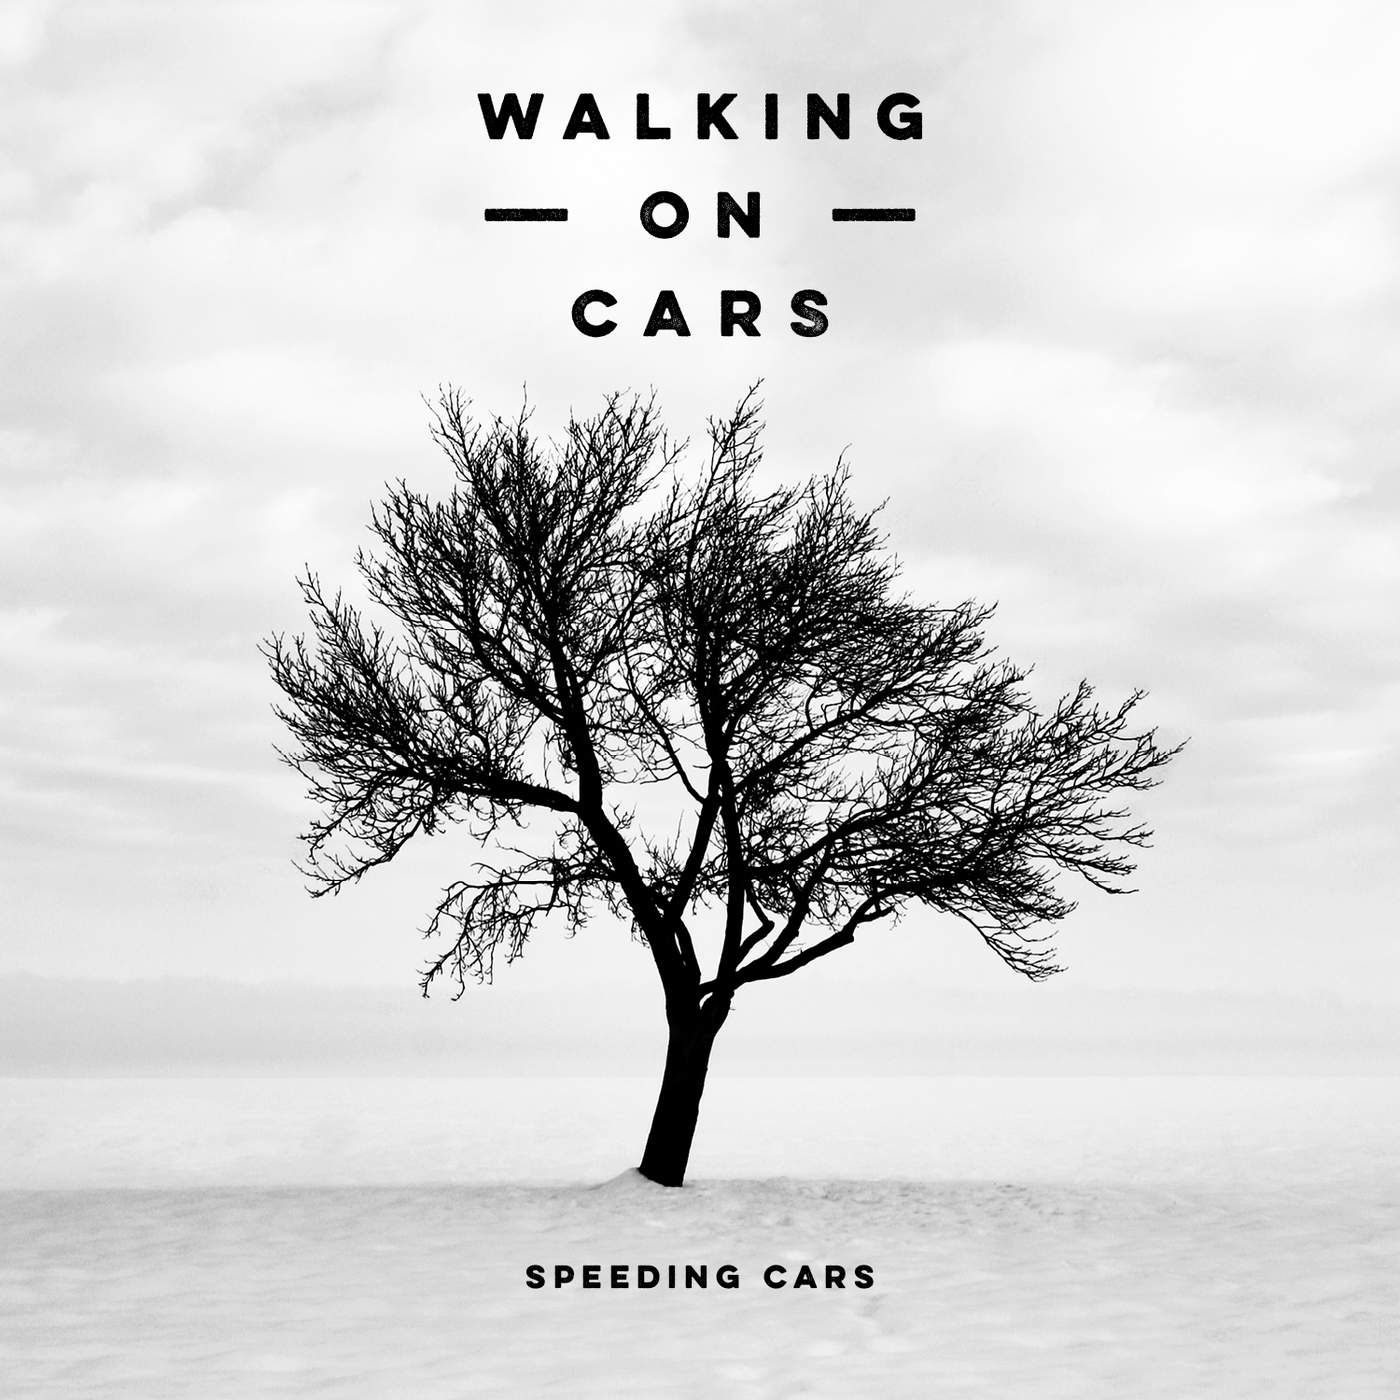 Walking On Cars - Speeding Cars (Acoustic Version) - Single Cover